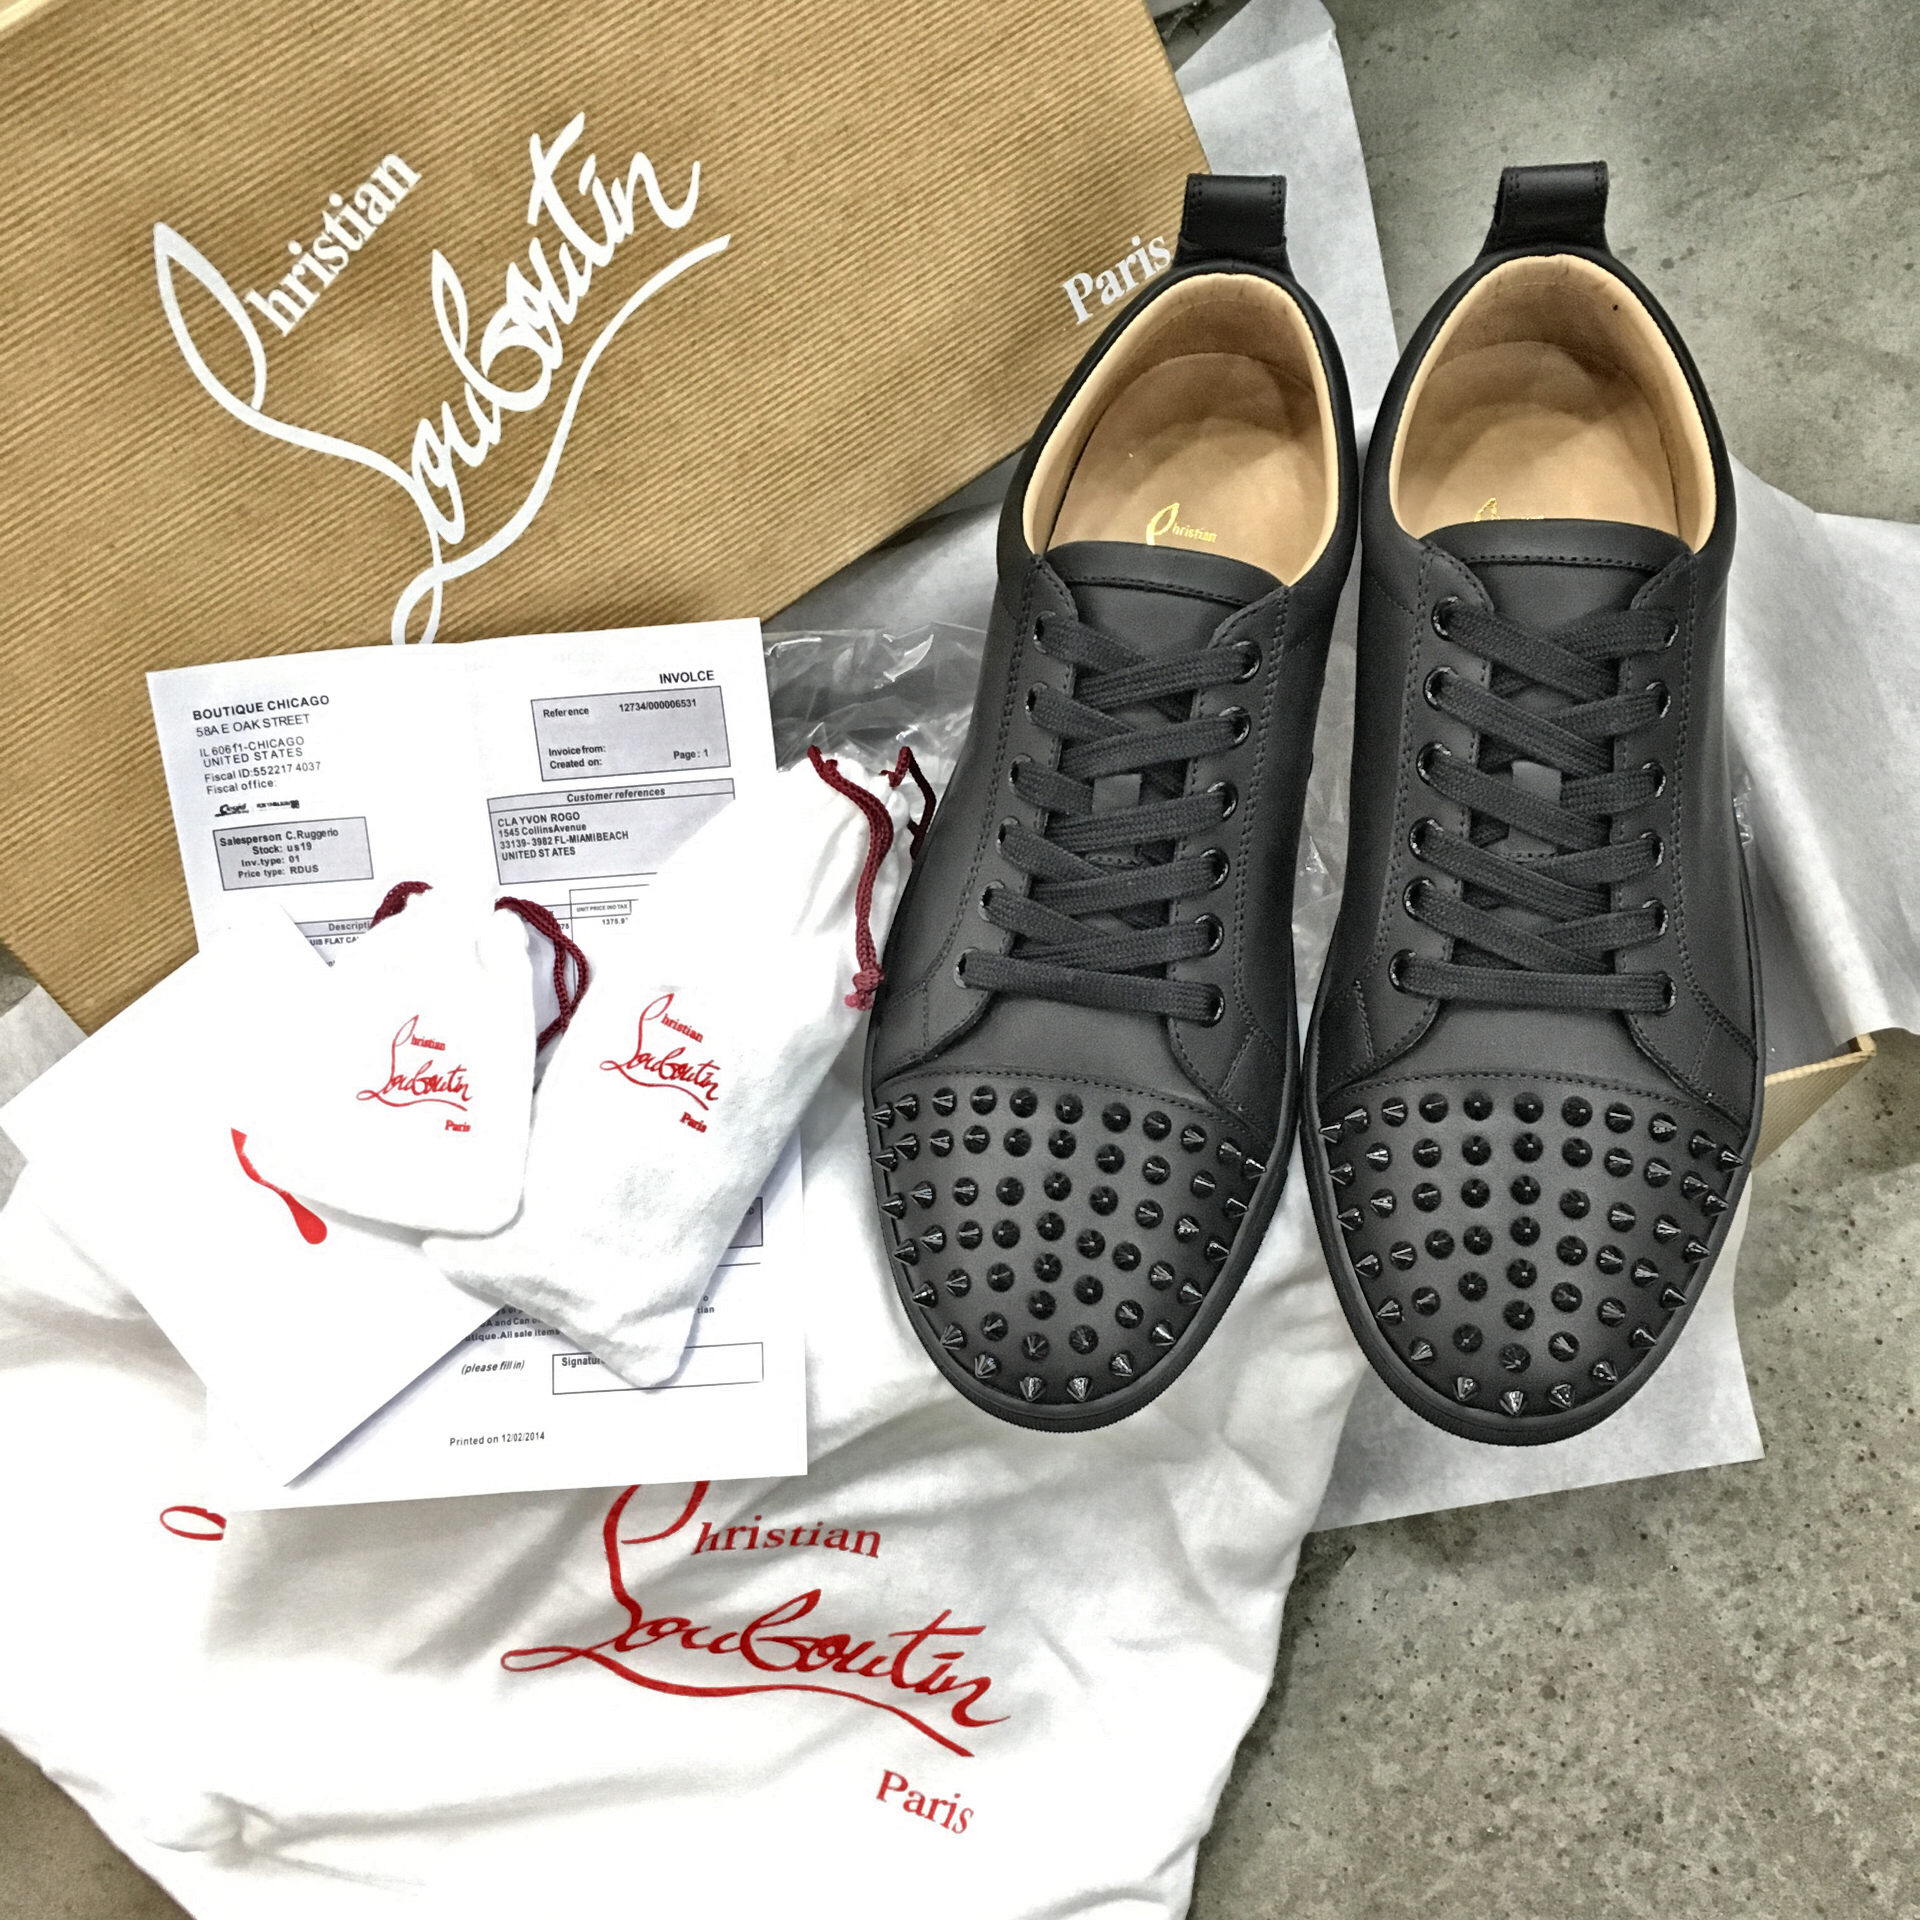 49cf24d0da35 How to Find Replica Christian Louboutin Men s Shoes at Cheap Wholesale  Price on Taobao and AliExpress